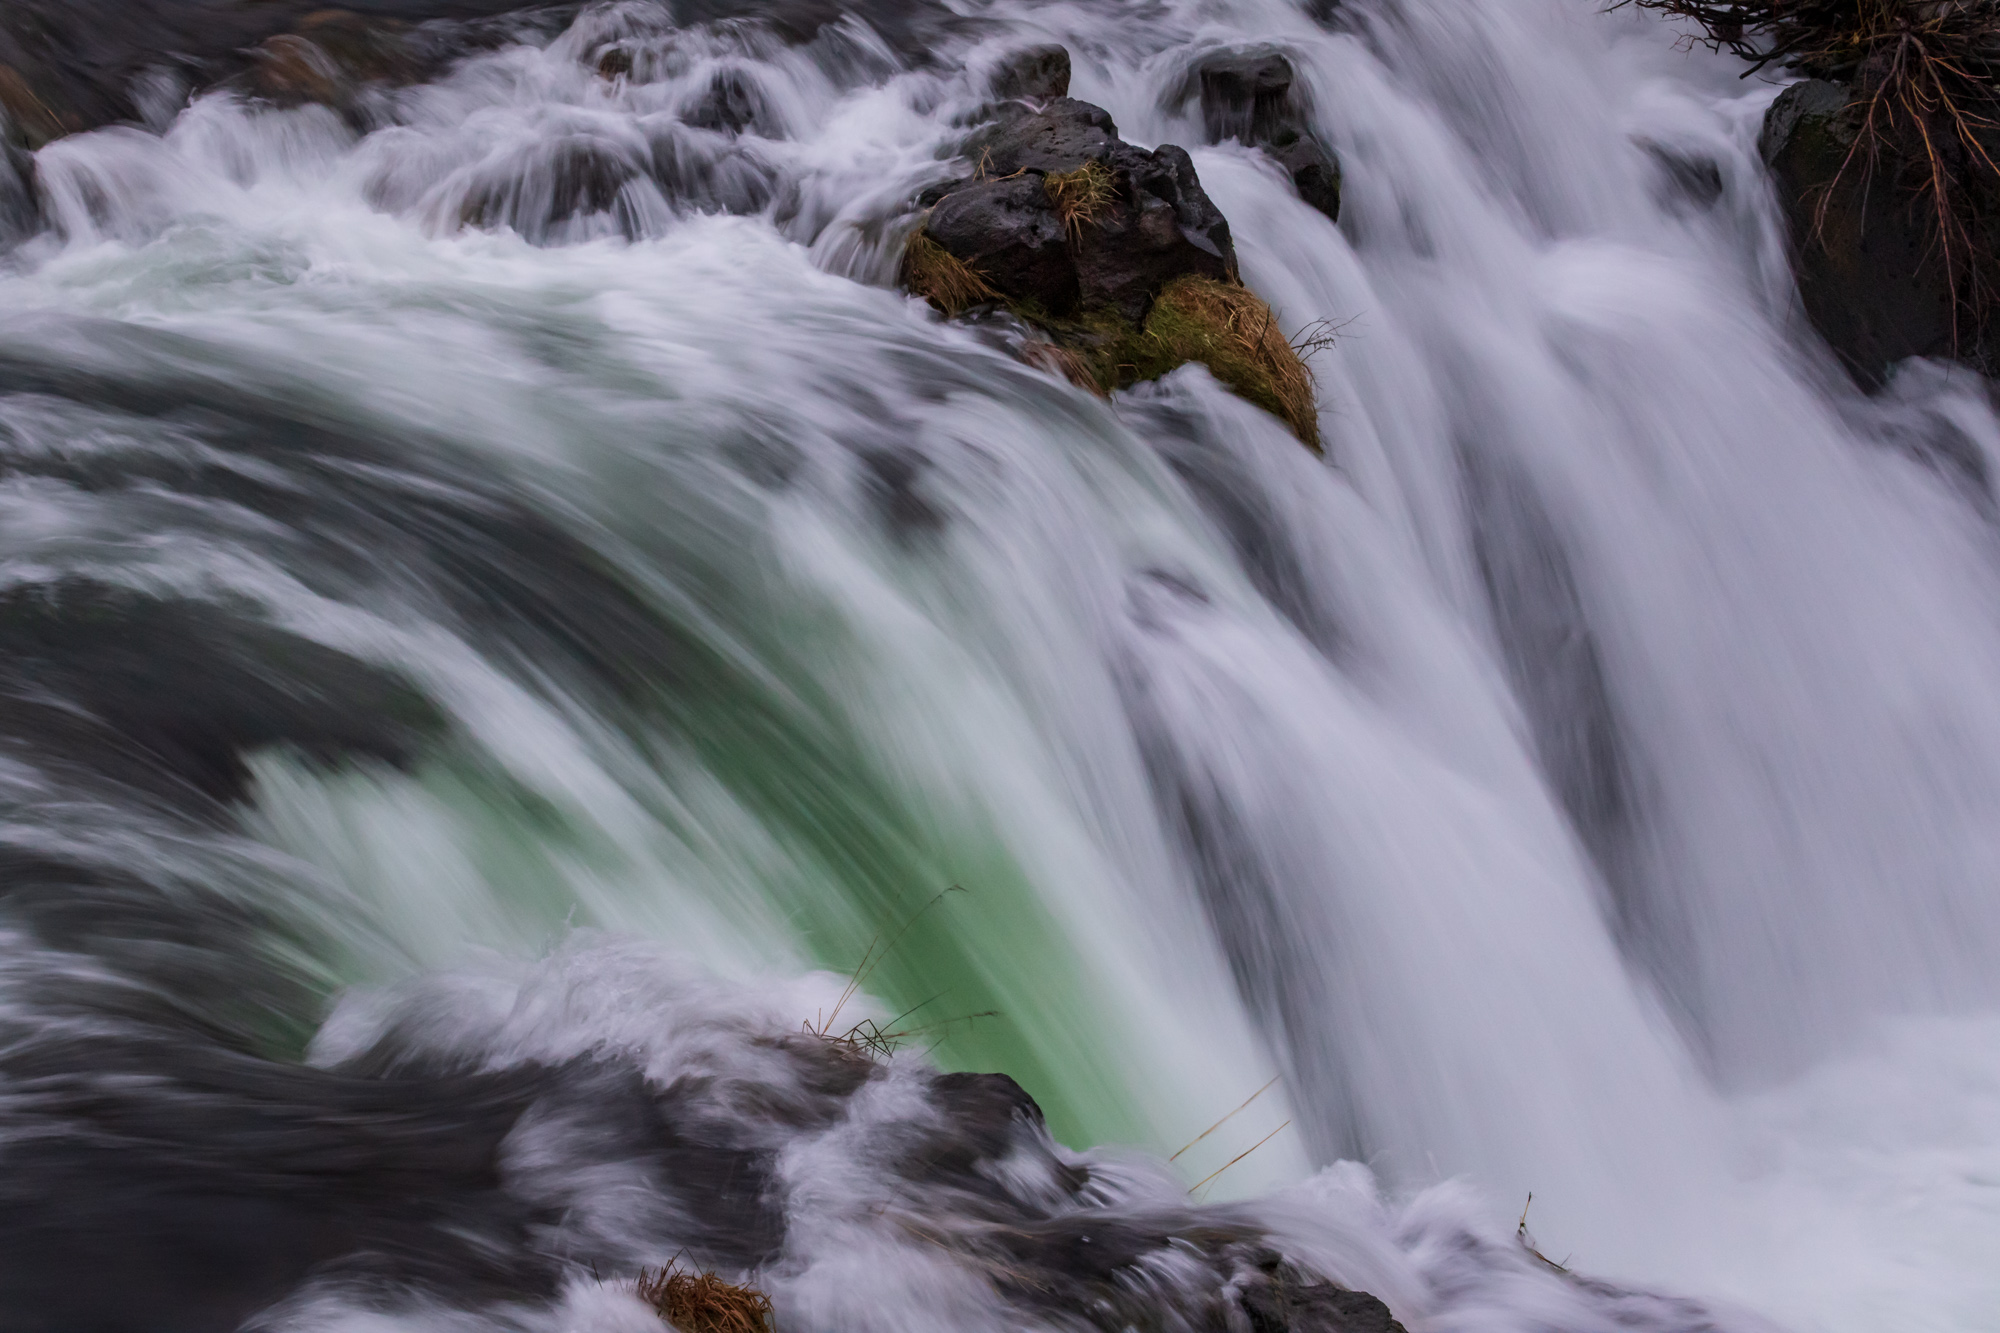 Green and white at Steelhead Falls